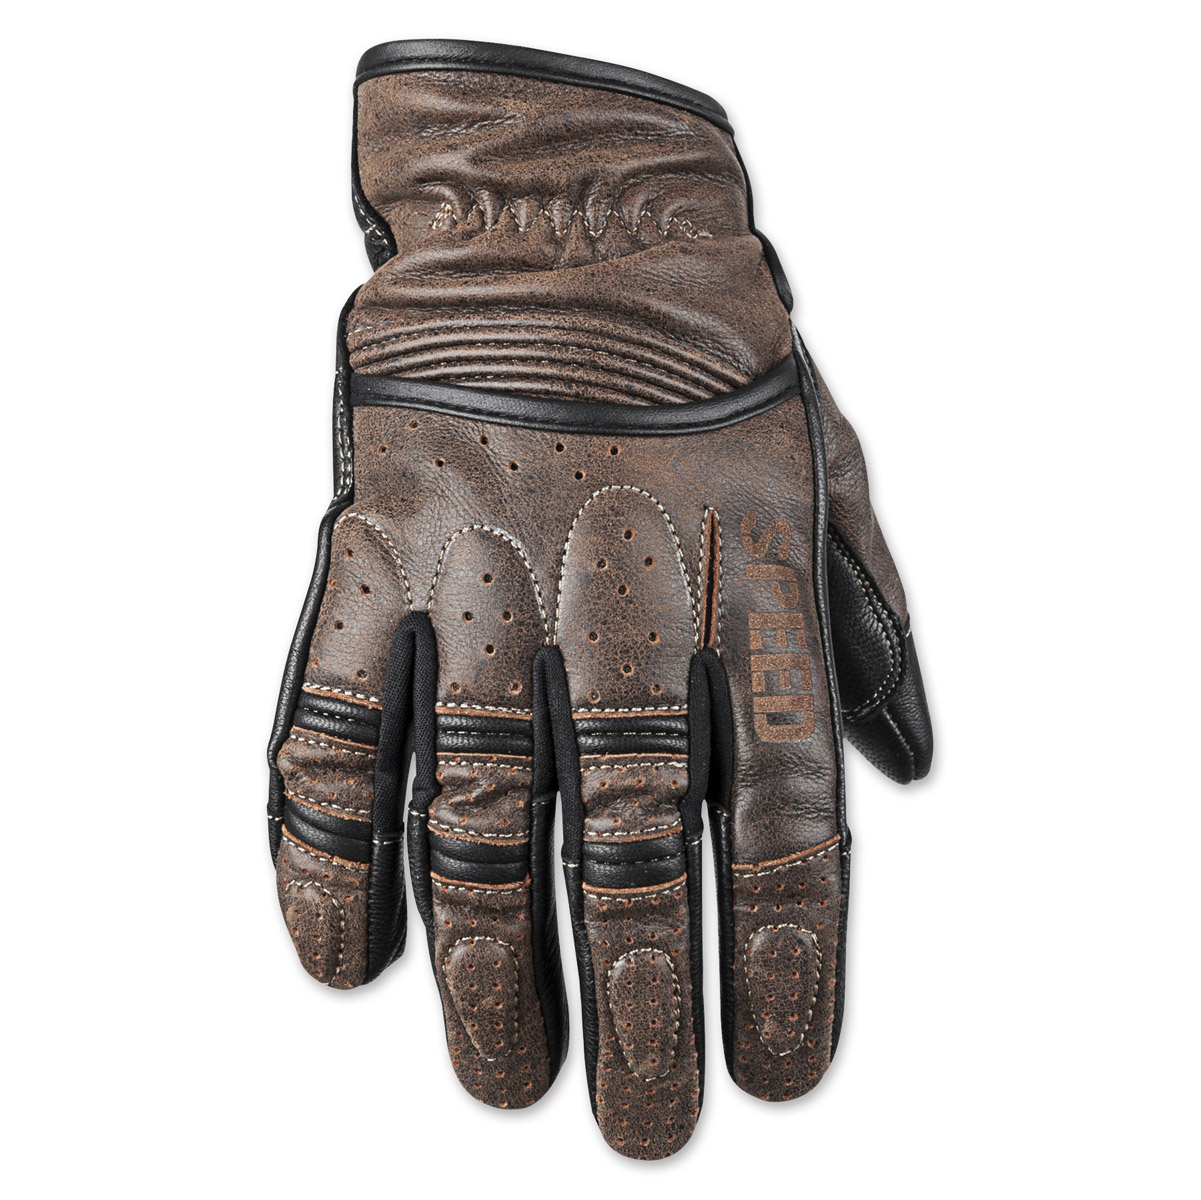 Leather Gauntlet Driving Gloves - Speed and strength rust and redemption distressed dark brown gloves